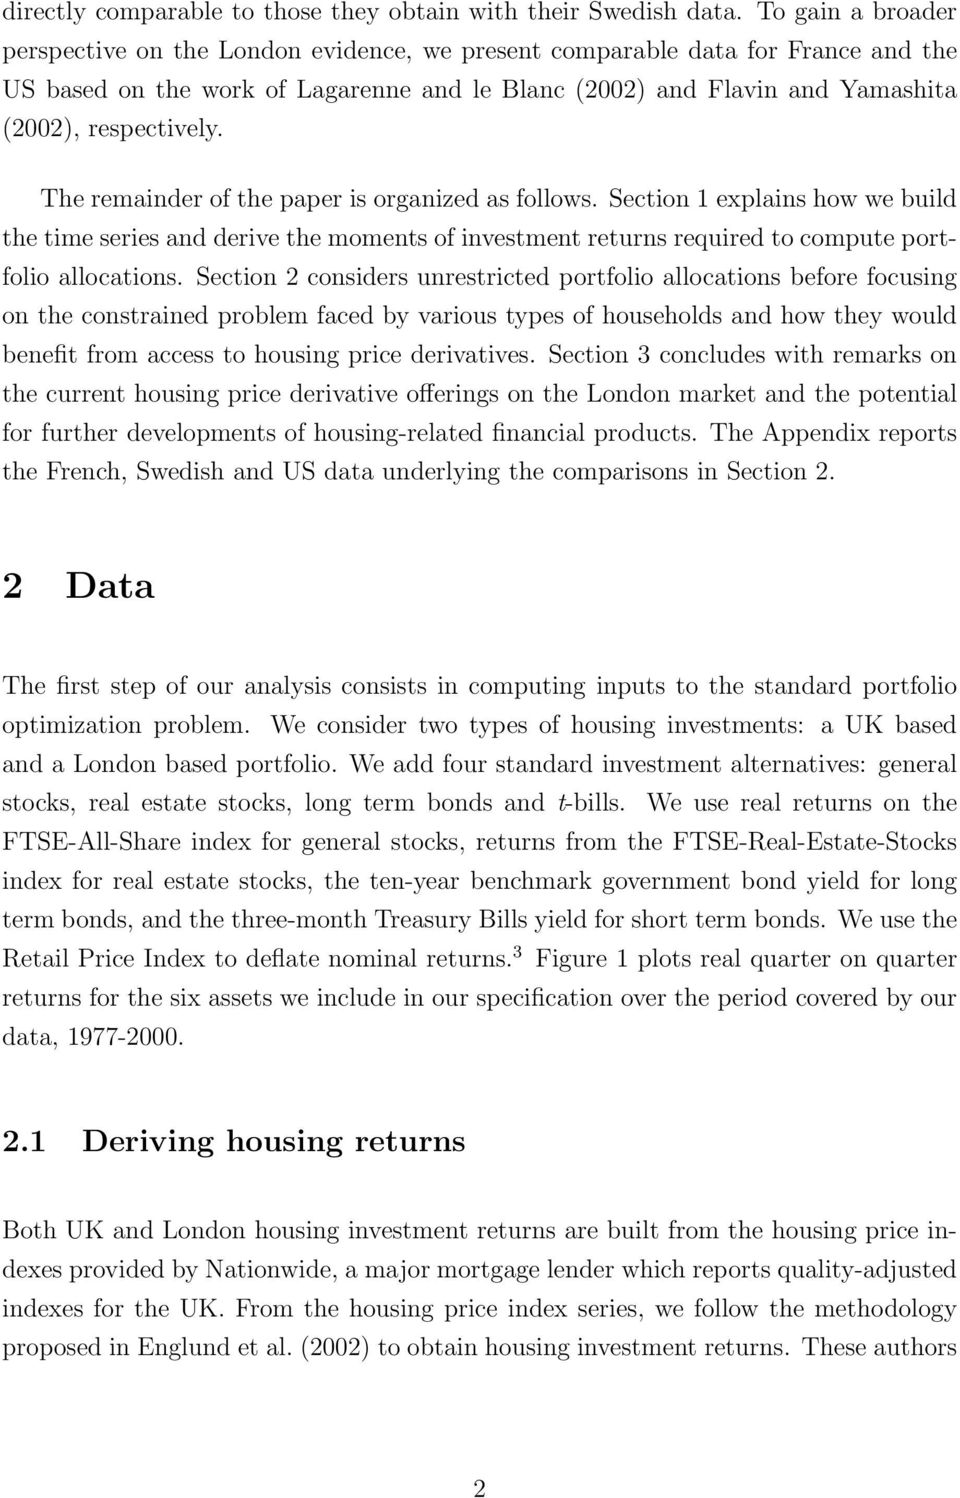 The remainder of the paper is organized as follows. Section 1 explains how we build the time series and derive the moments of investment returns required to compute portfolio allocations.